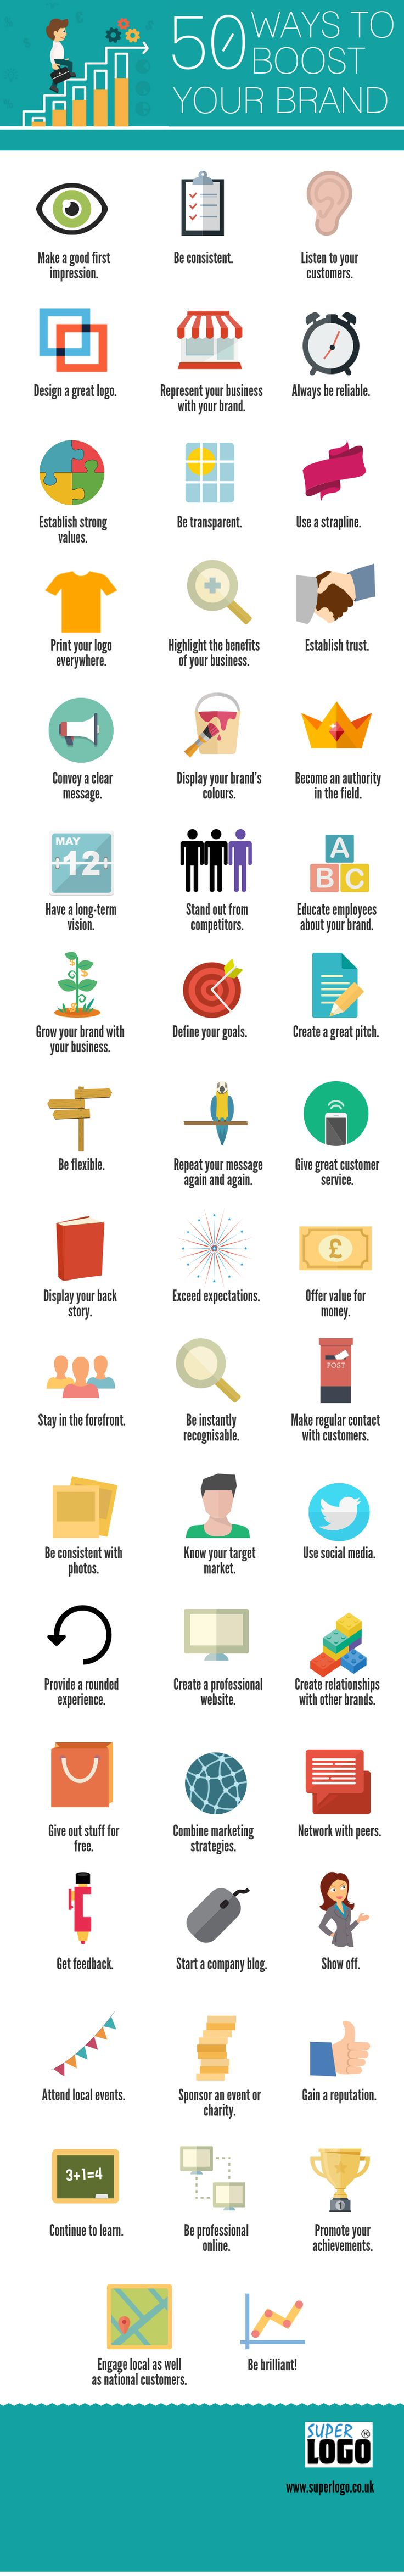 A listing of the easiest and best ways to build your brand quickly and effectively. #branding #infographic #personalbranding brandonagaille.com